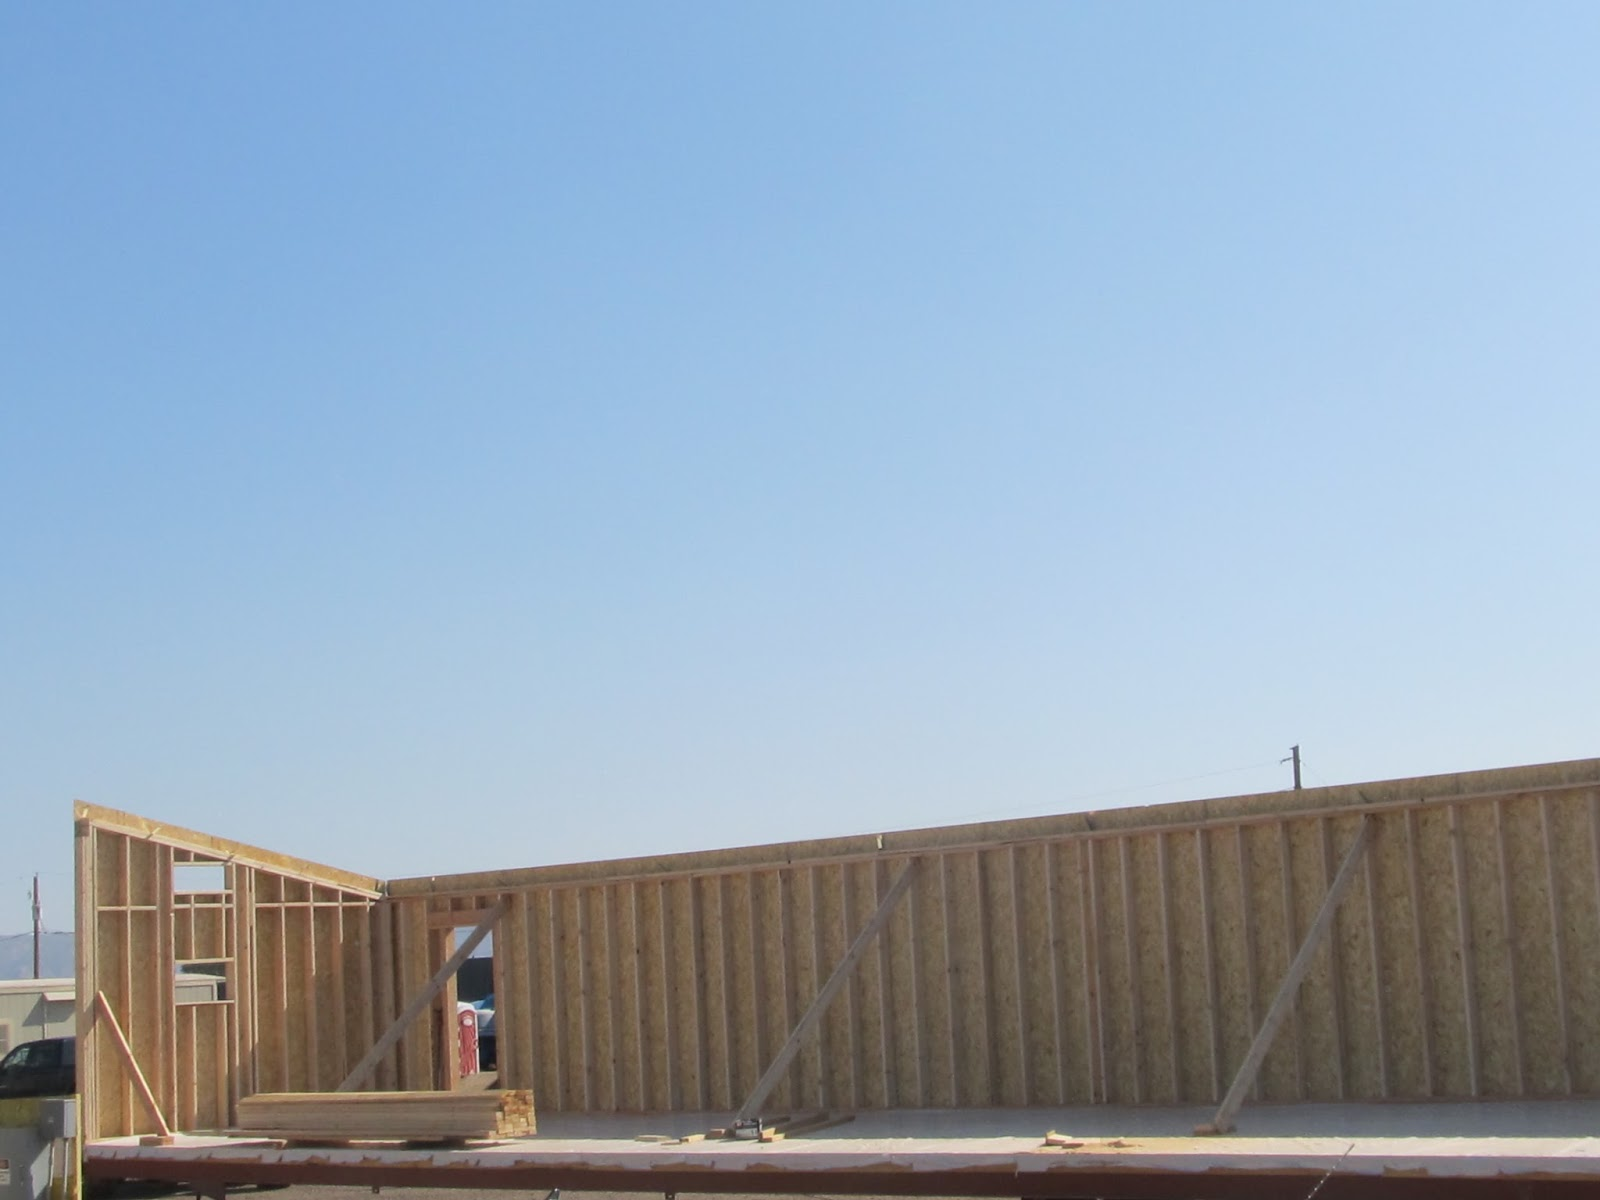 2x6 Wall Construction : Modular solutions ltd the experts on prefabricated